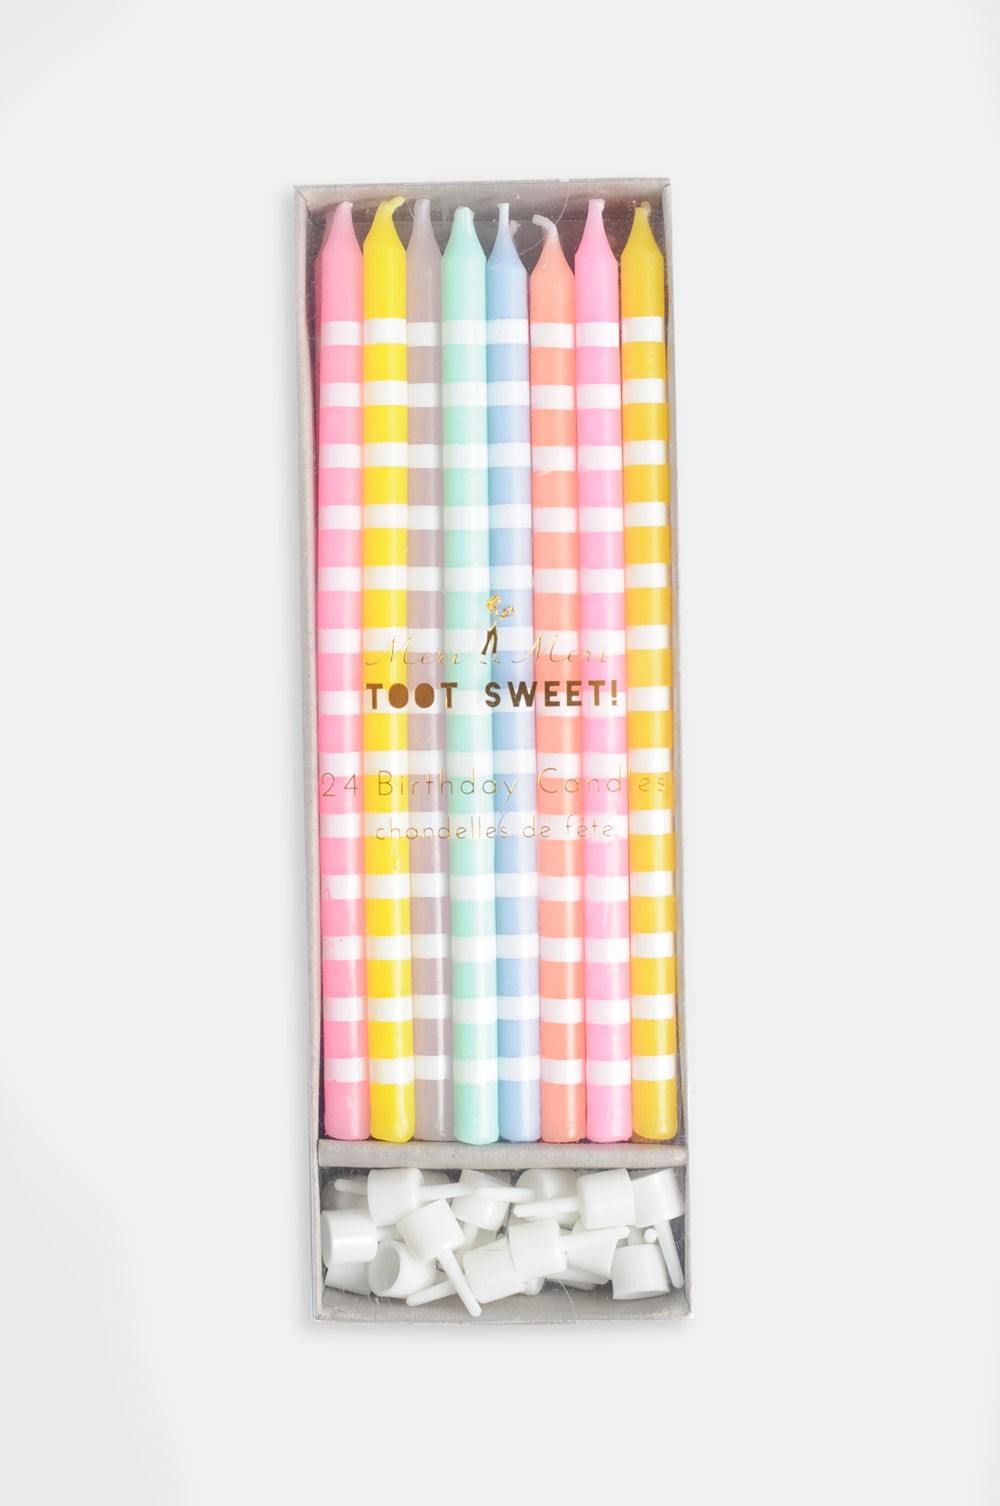 Pastel Stripes Birthday Candles 1 2